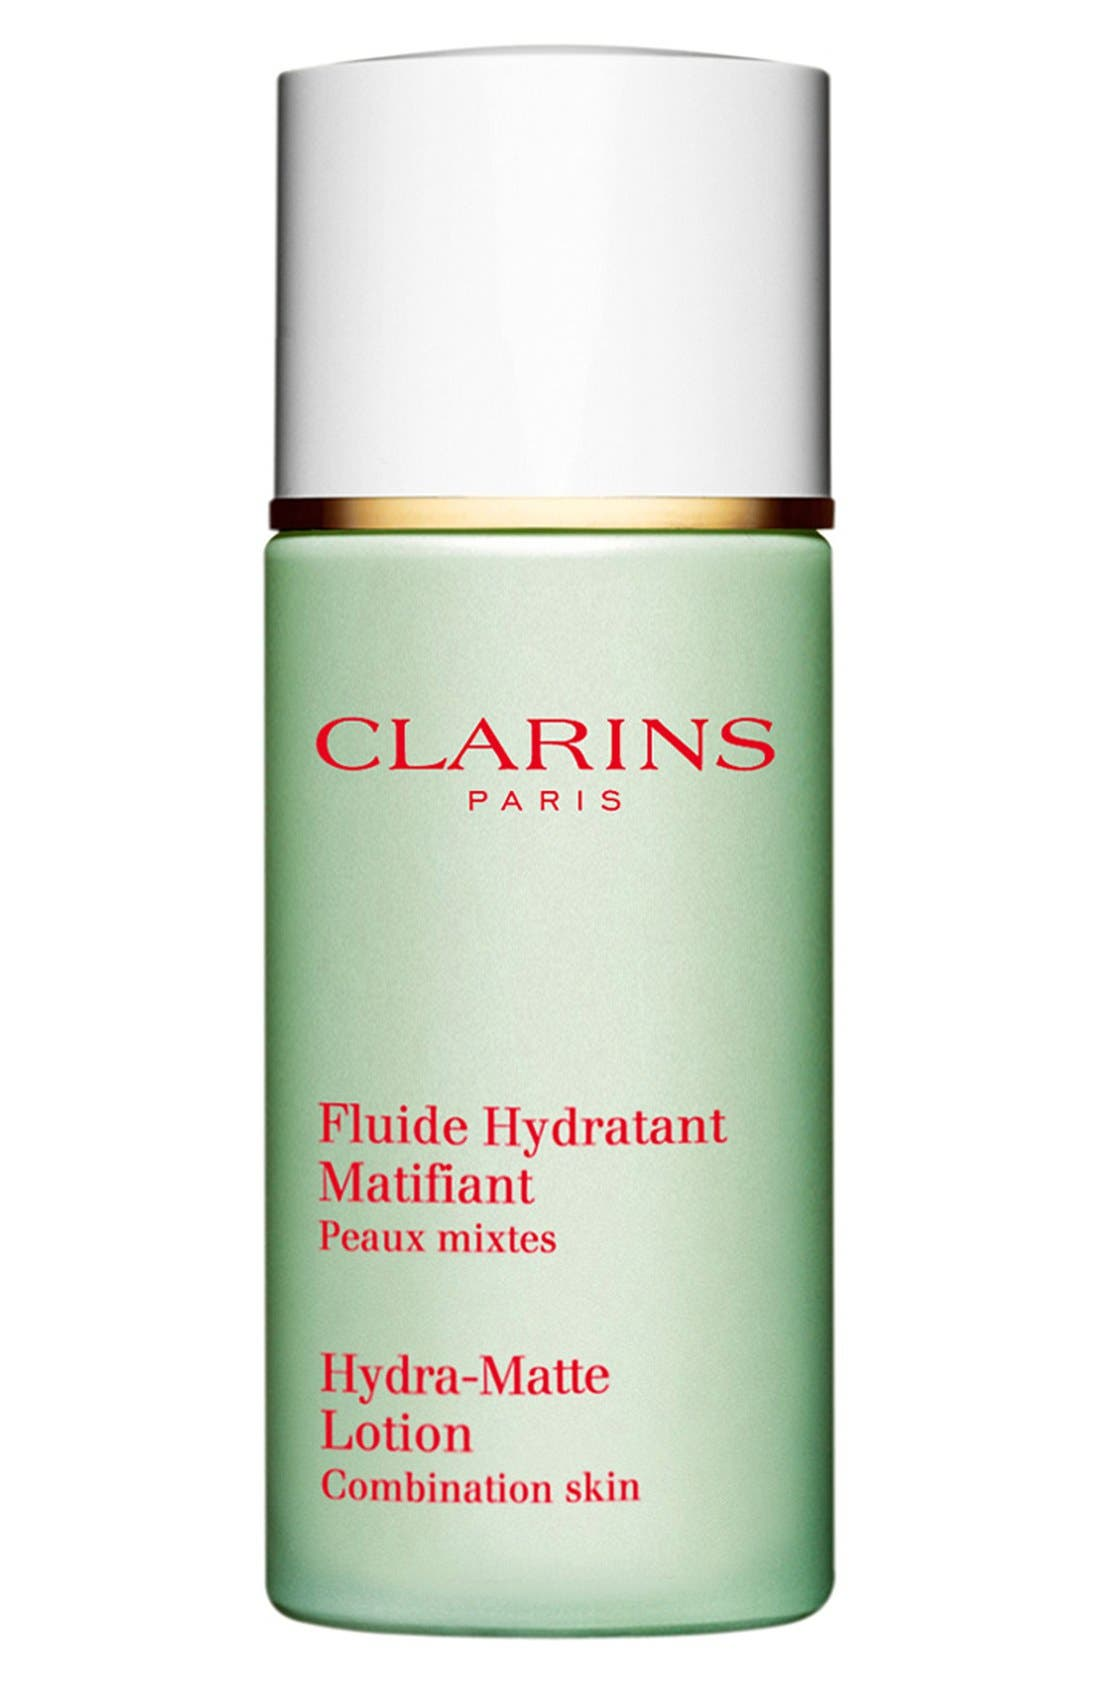 Clarins Hydra-Matte Lotion